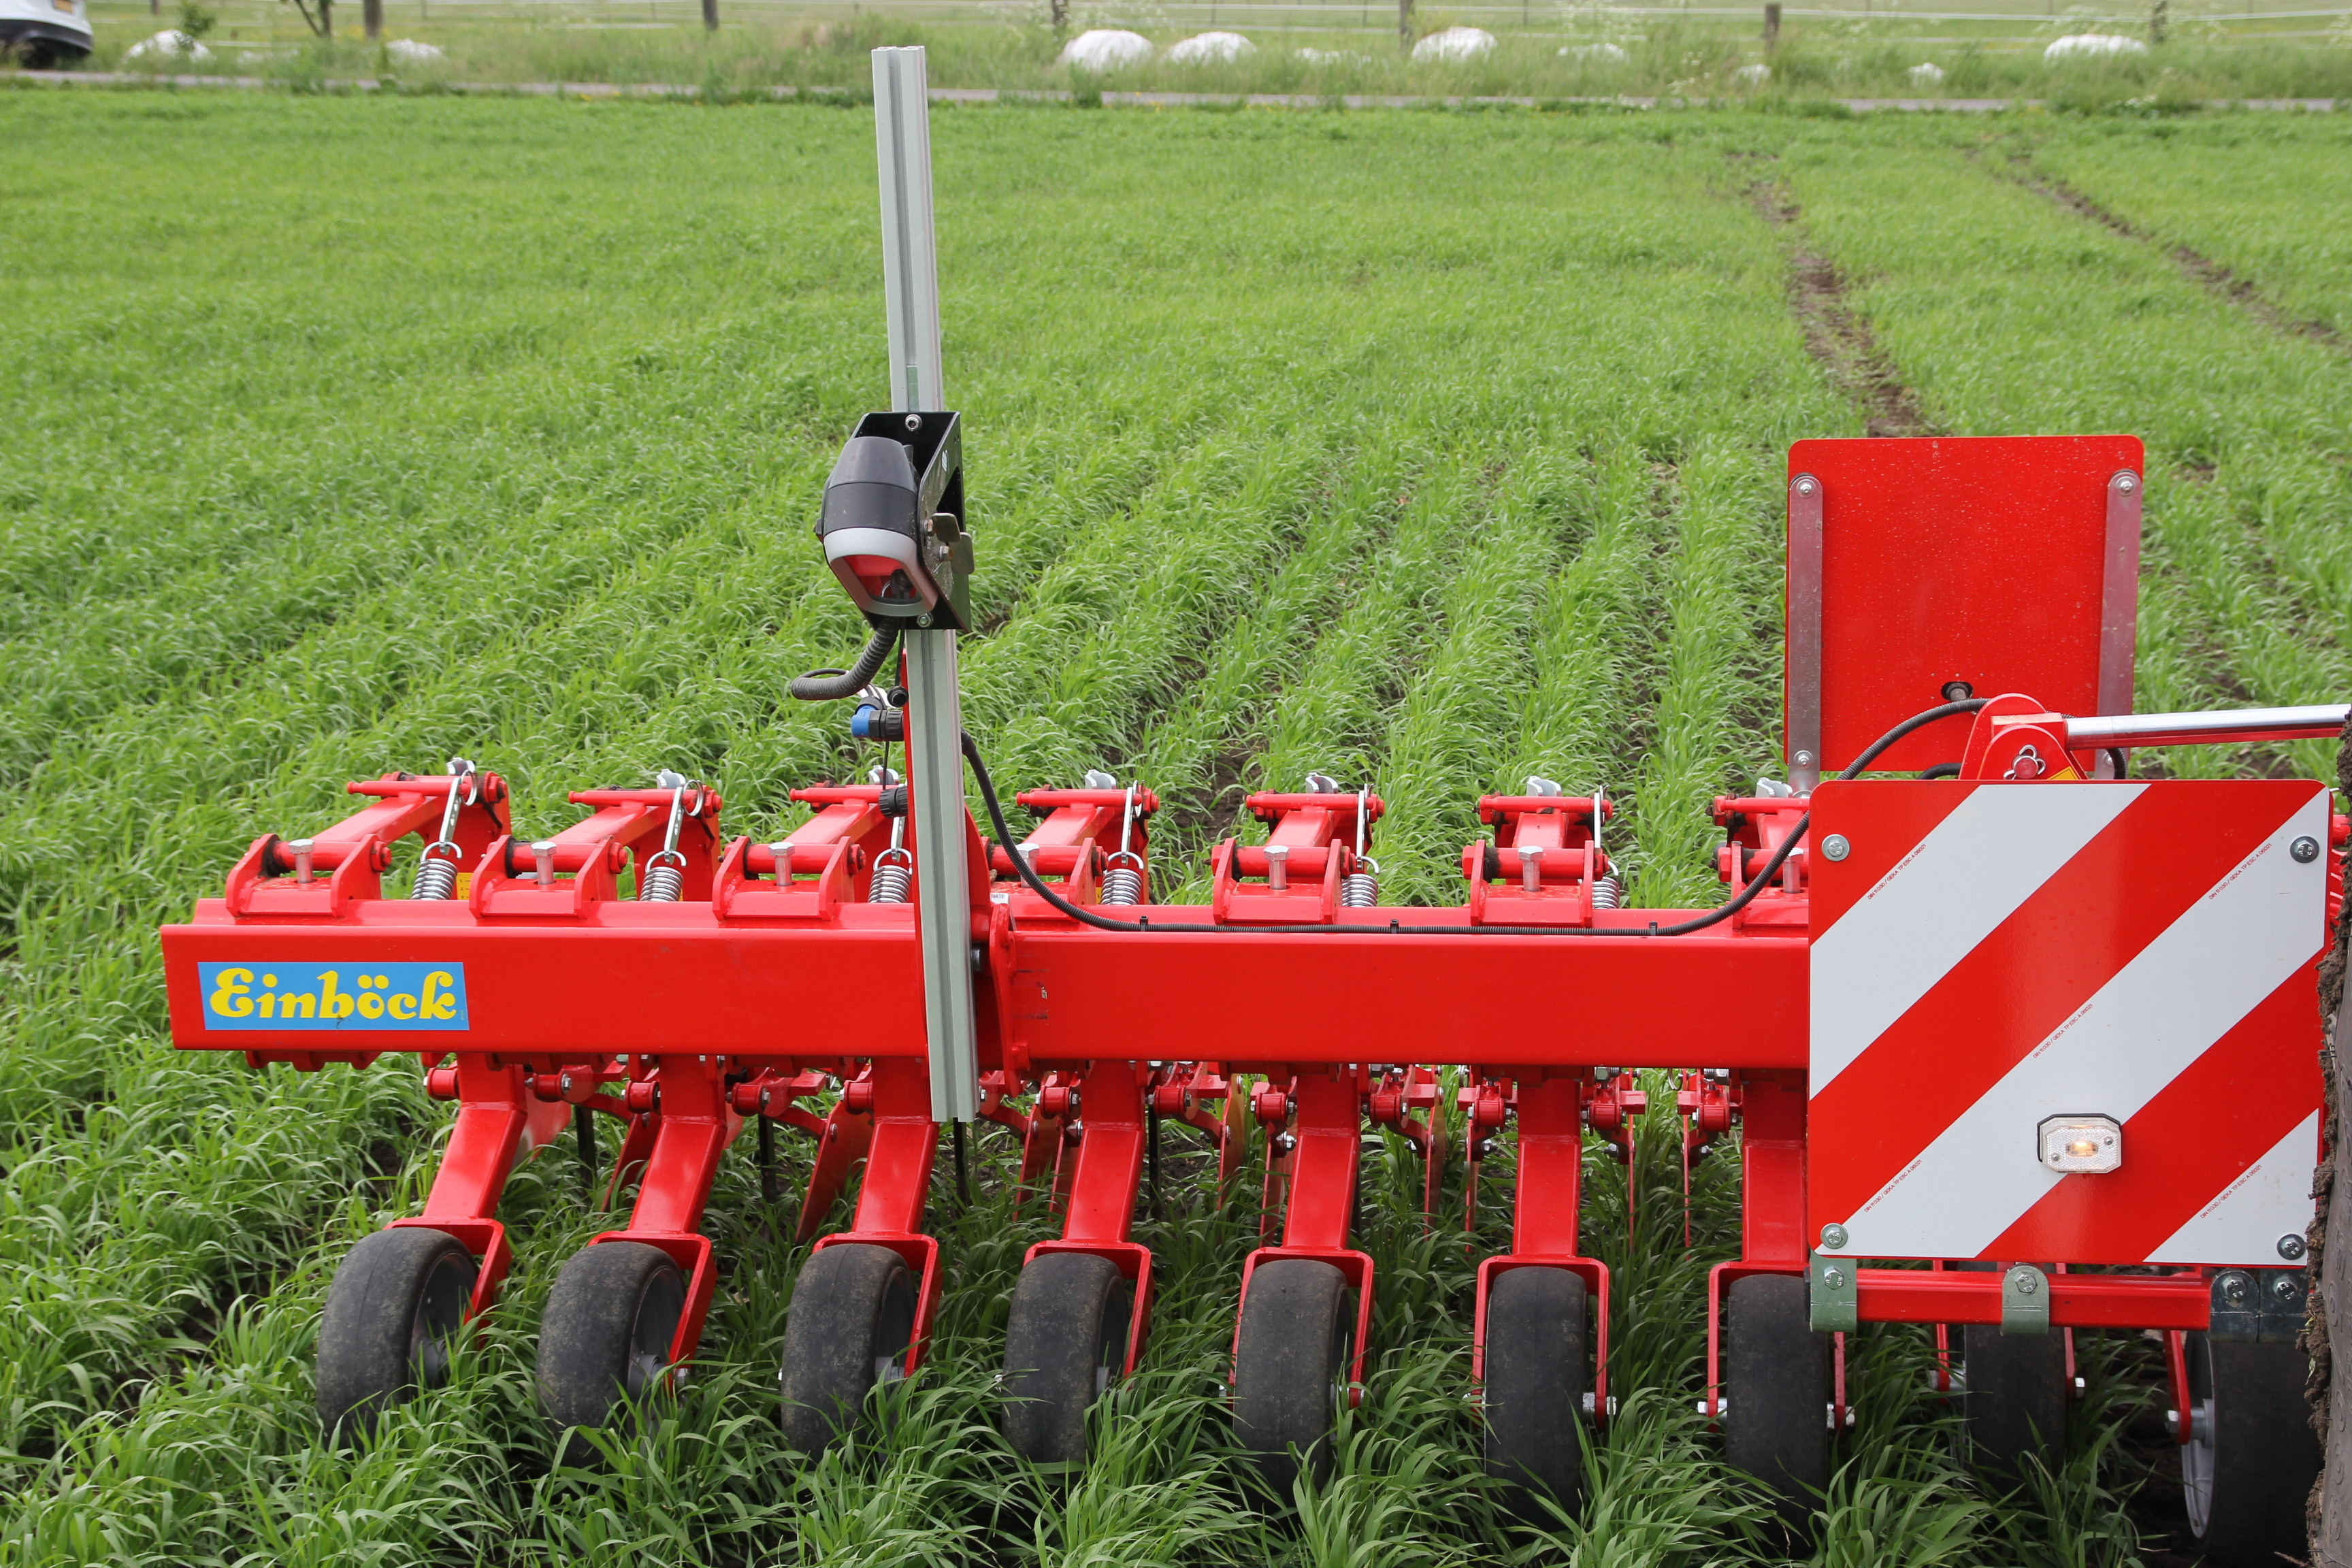 Agritechnica 2019 Innovation Award 2017 Rotative Speed Regulator Borer Driller Controller Chemical Spraying Is Increasingly Viewed Very Critically By The General Public Consumers And Policy Makers In This Context Mechanical Weed Control Row